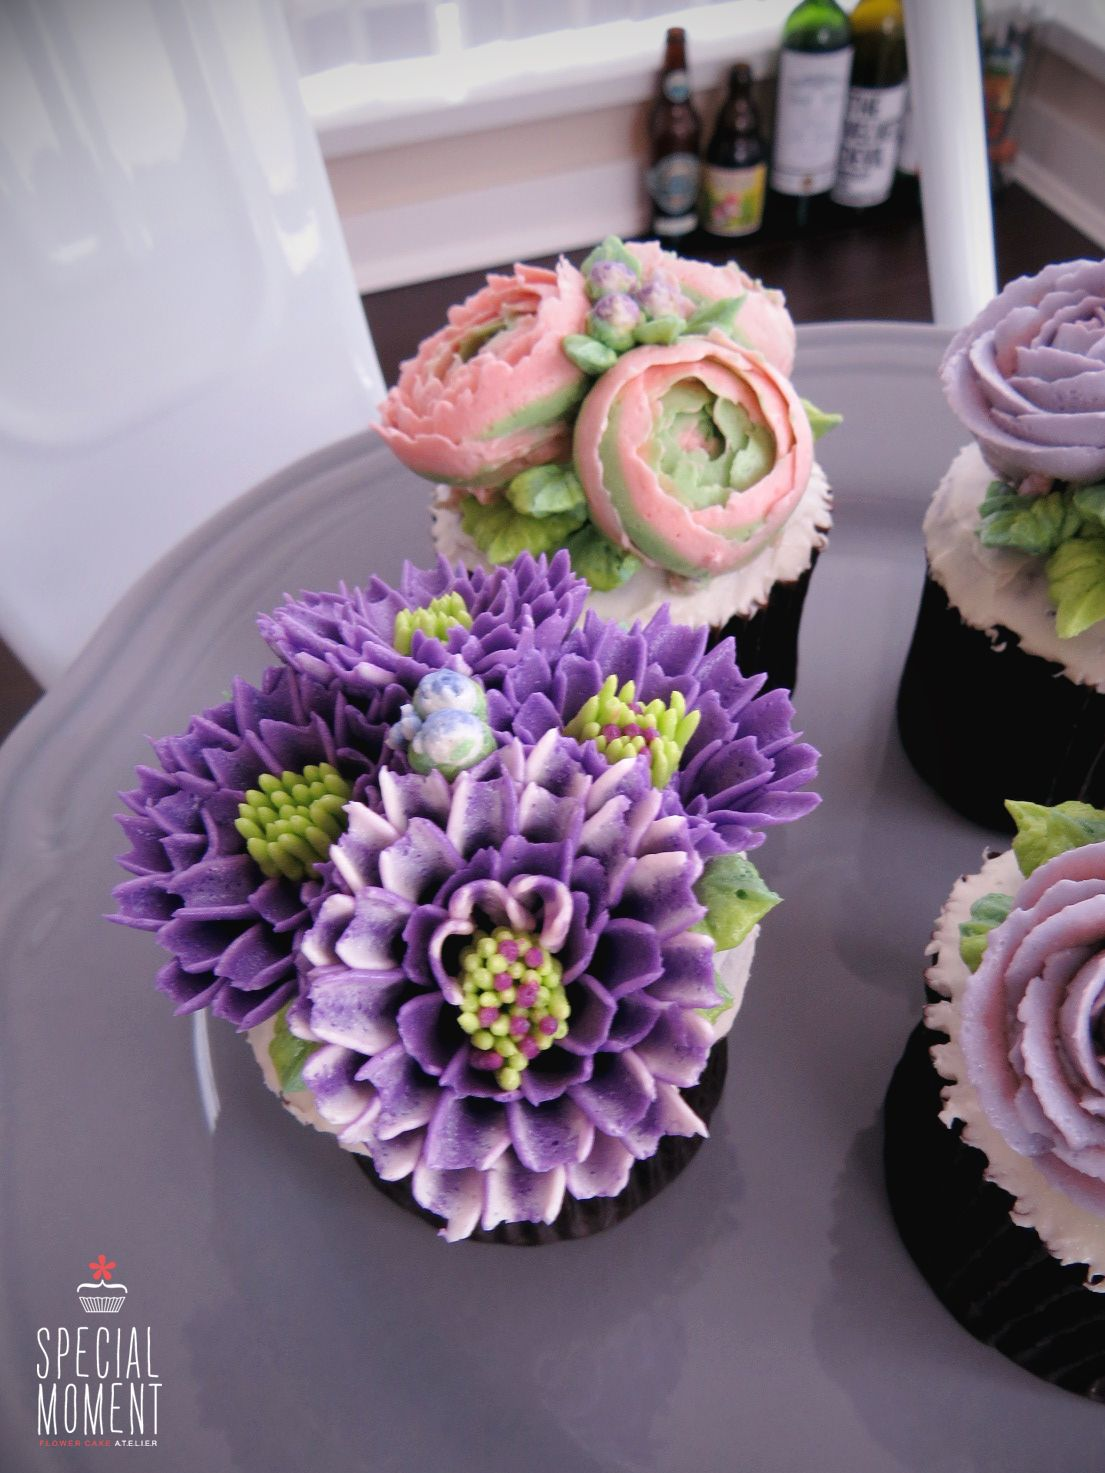 +Choco chocolate flower buttercream cupcake for mother's birthday/butter cream cake/cupcake decorating tips ... made by SPECIAL MOMENT